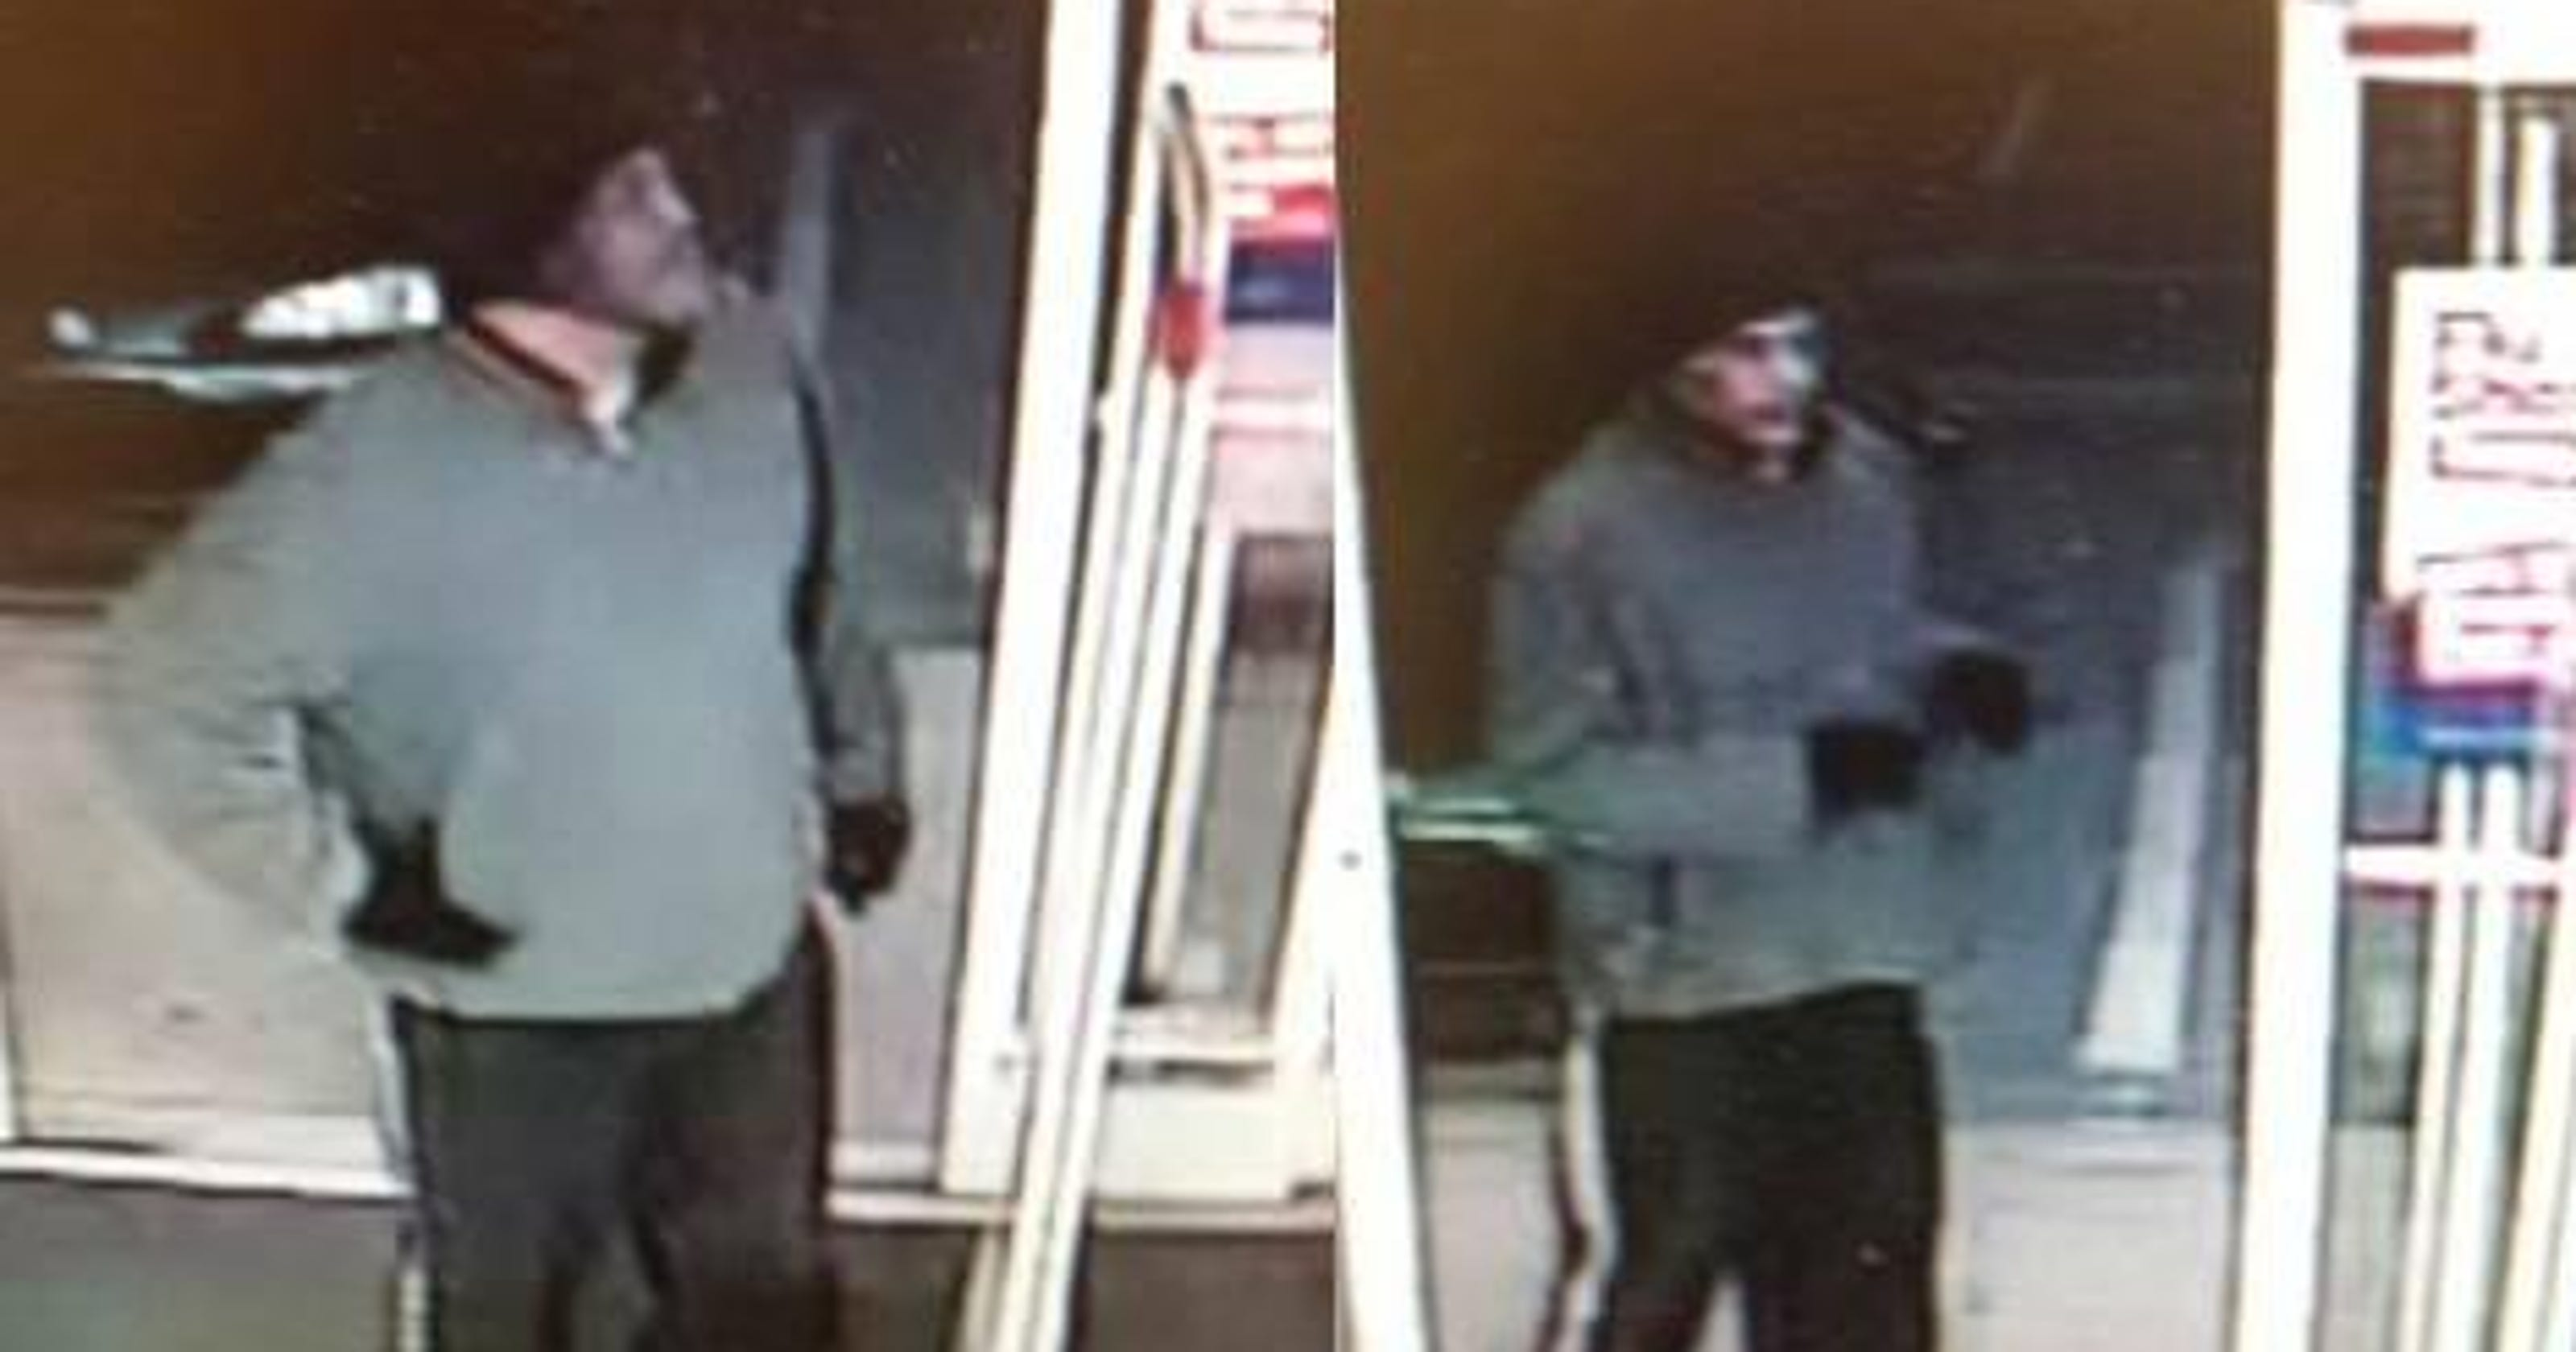 police seek suspect in east nashville attempted robbery